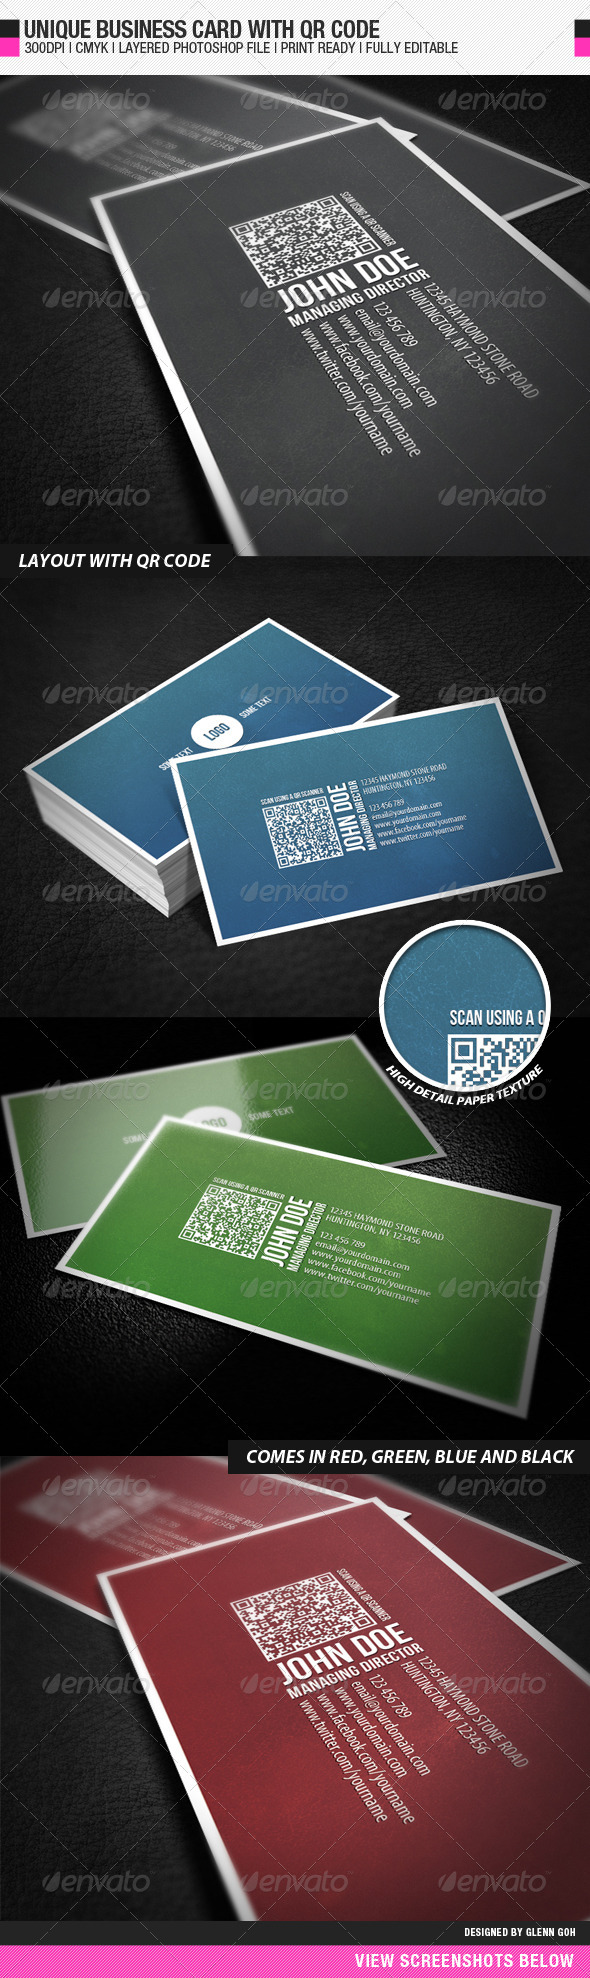 GraphicRiver Business Card With QR Code 553561